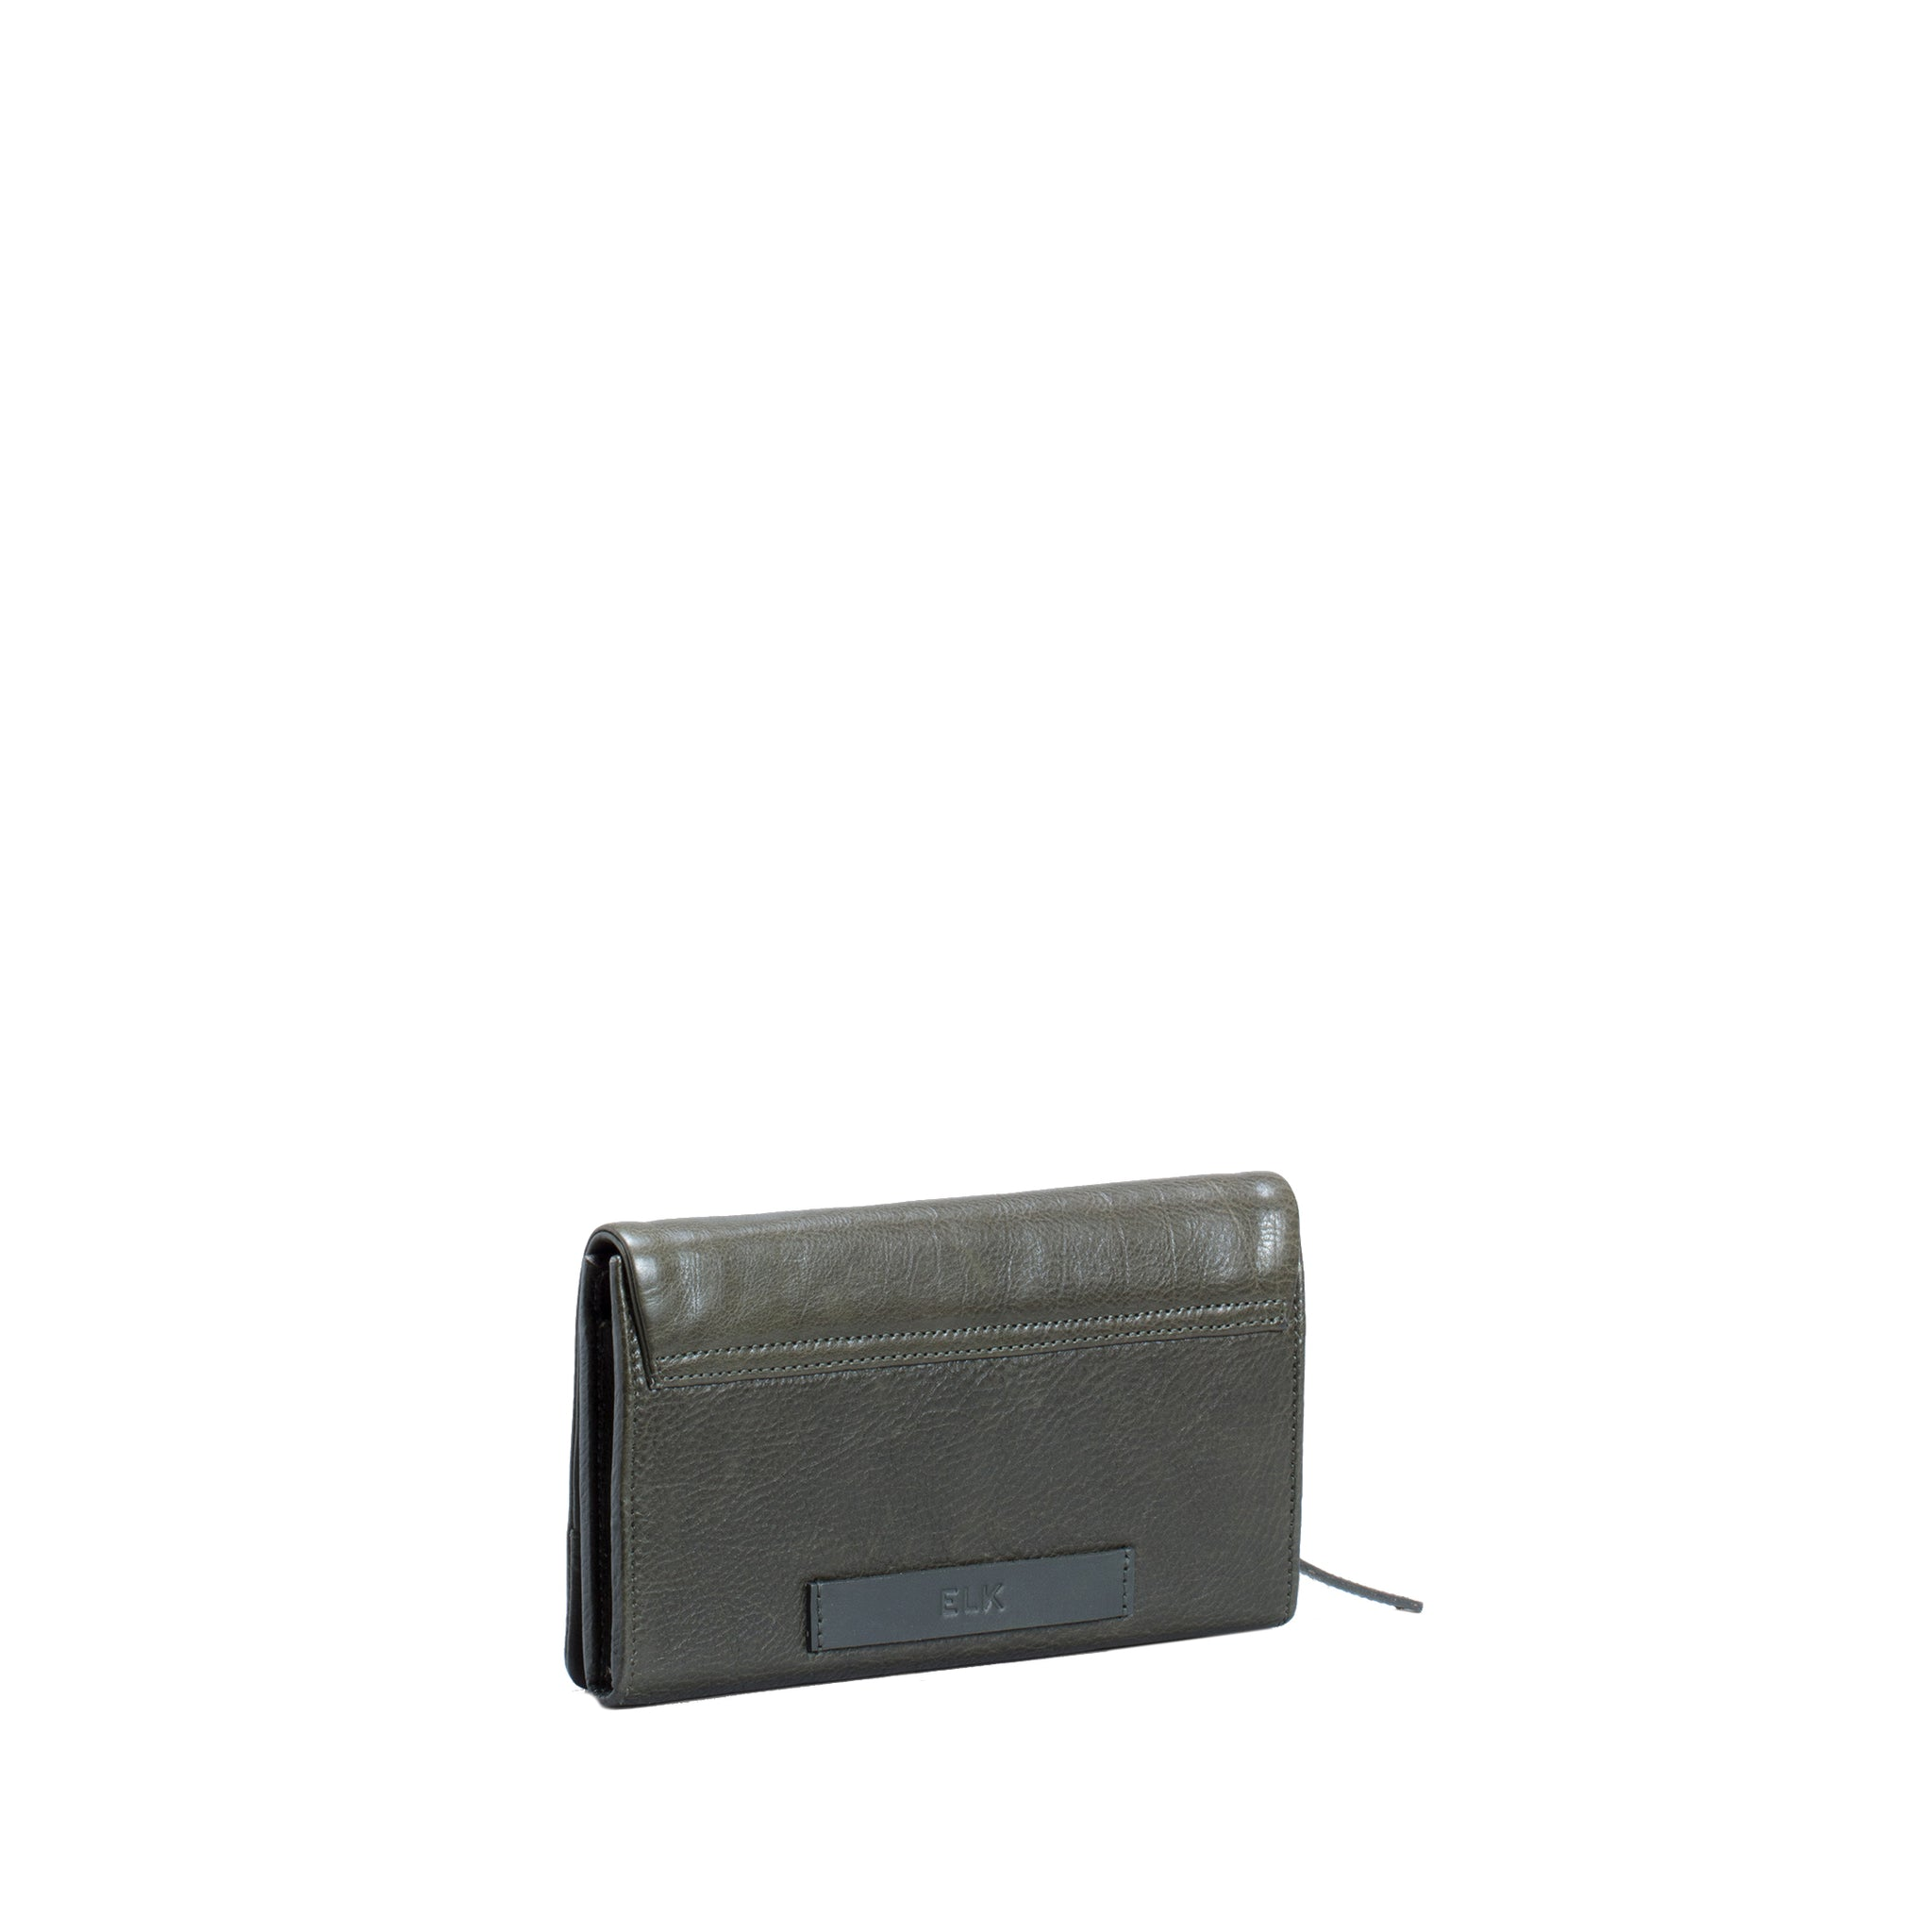 Fiola Leather Wallet - Khaki Green - Elk - Paper Plane Store